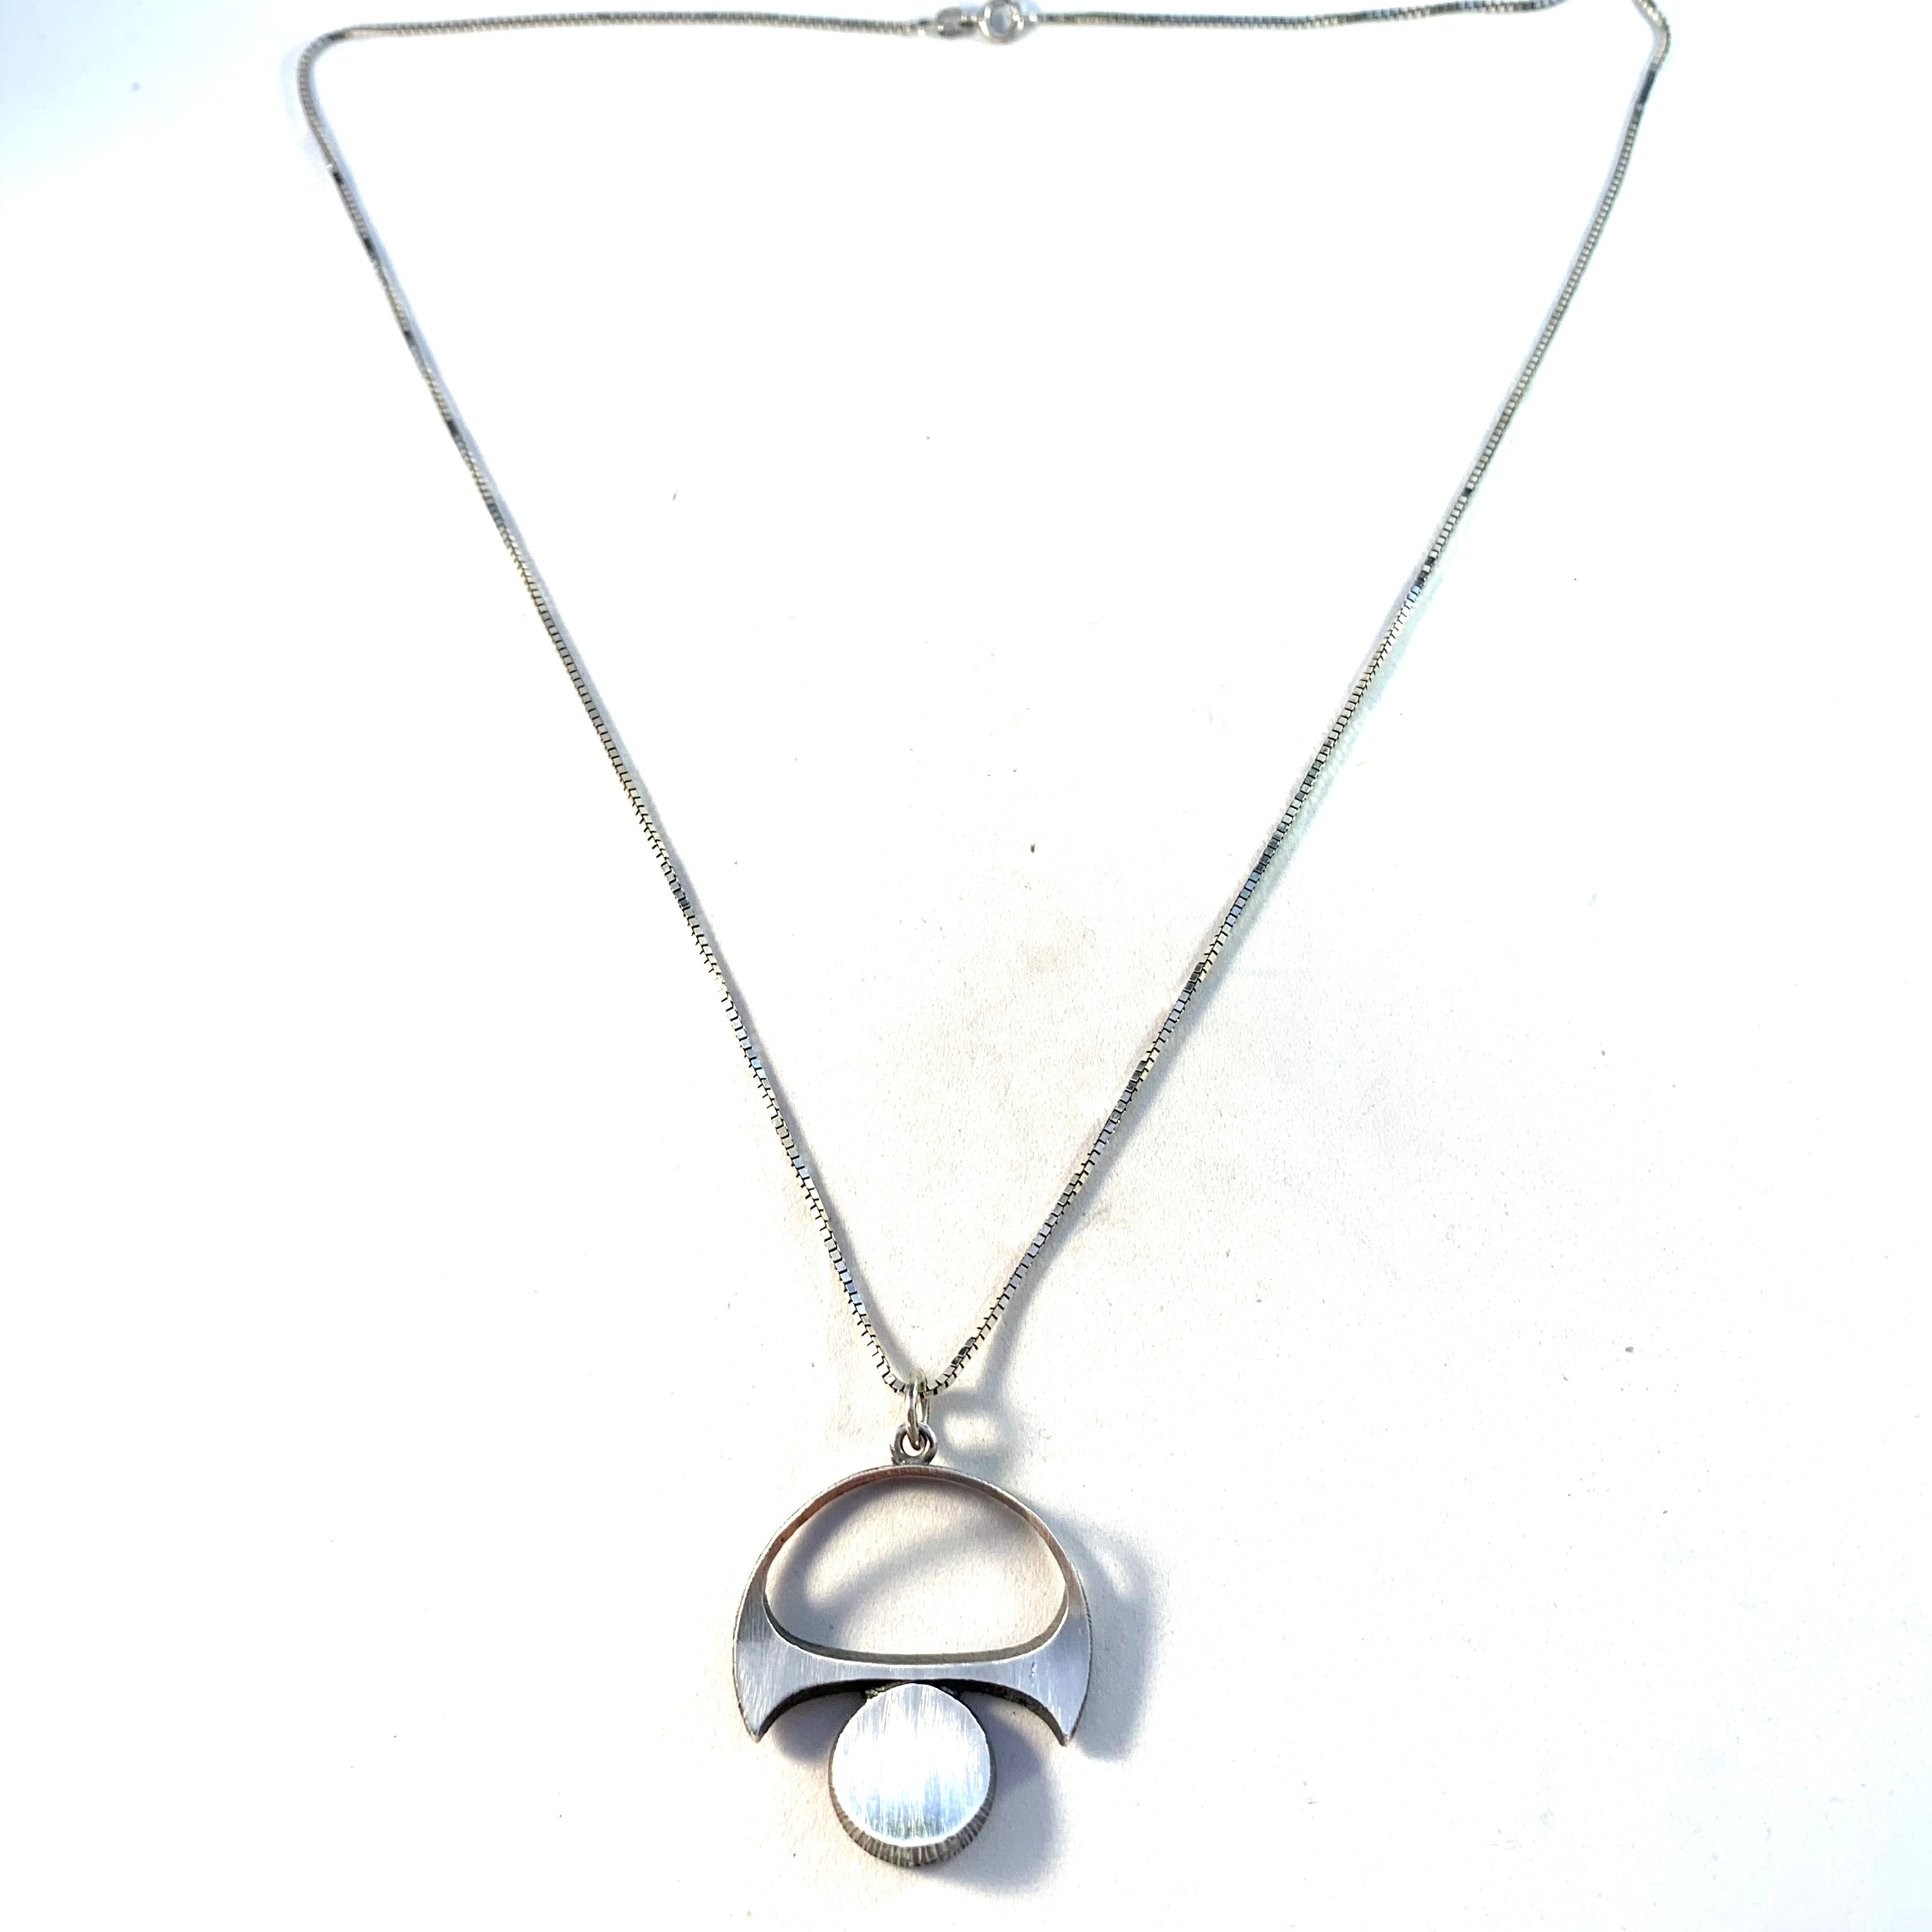 Sten & Laine, Finland 1973 Vintage Sterling Silver Pendant. Italian Chain.